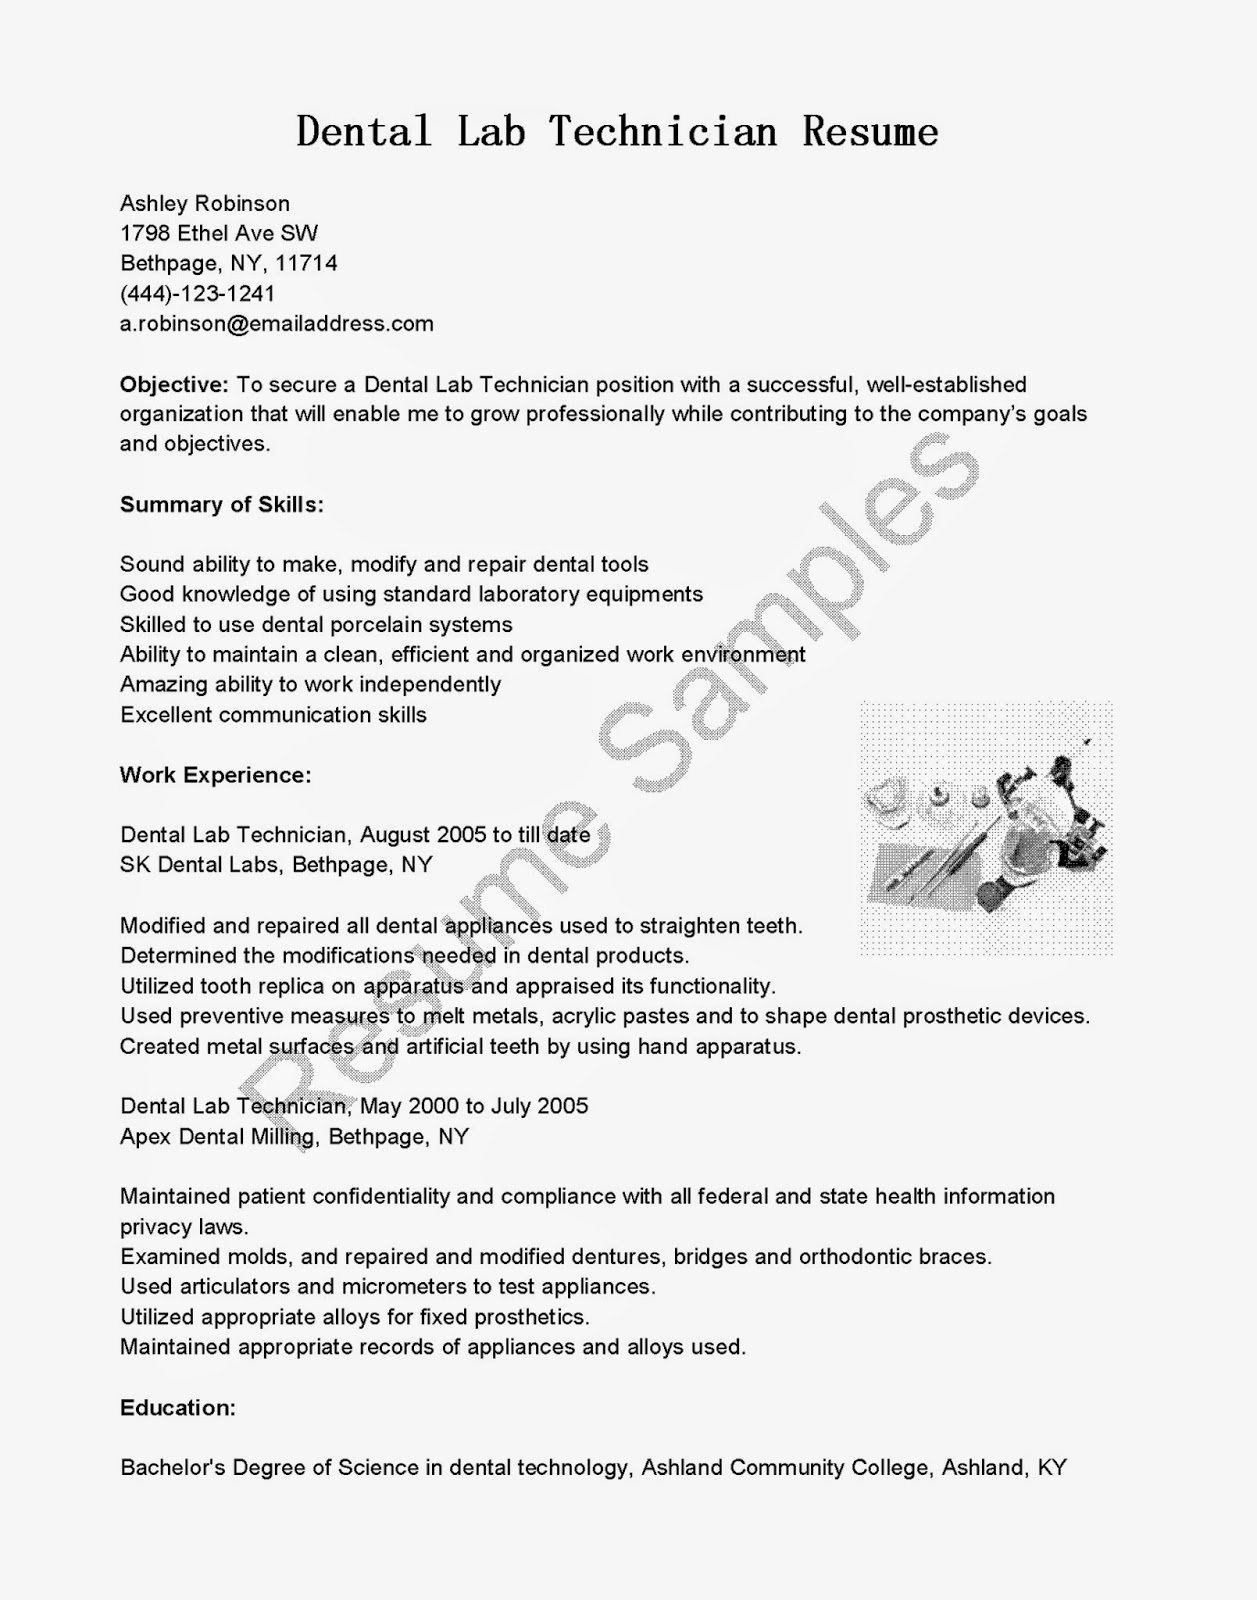 Cover Letter For Medical Lab Technician Job Bartending Resume Example  Emailing A Cover Letter And Resume  Medical Lab Technician Resume